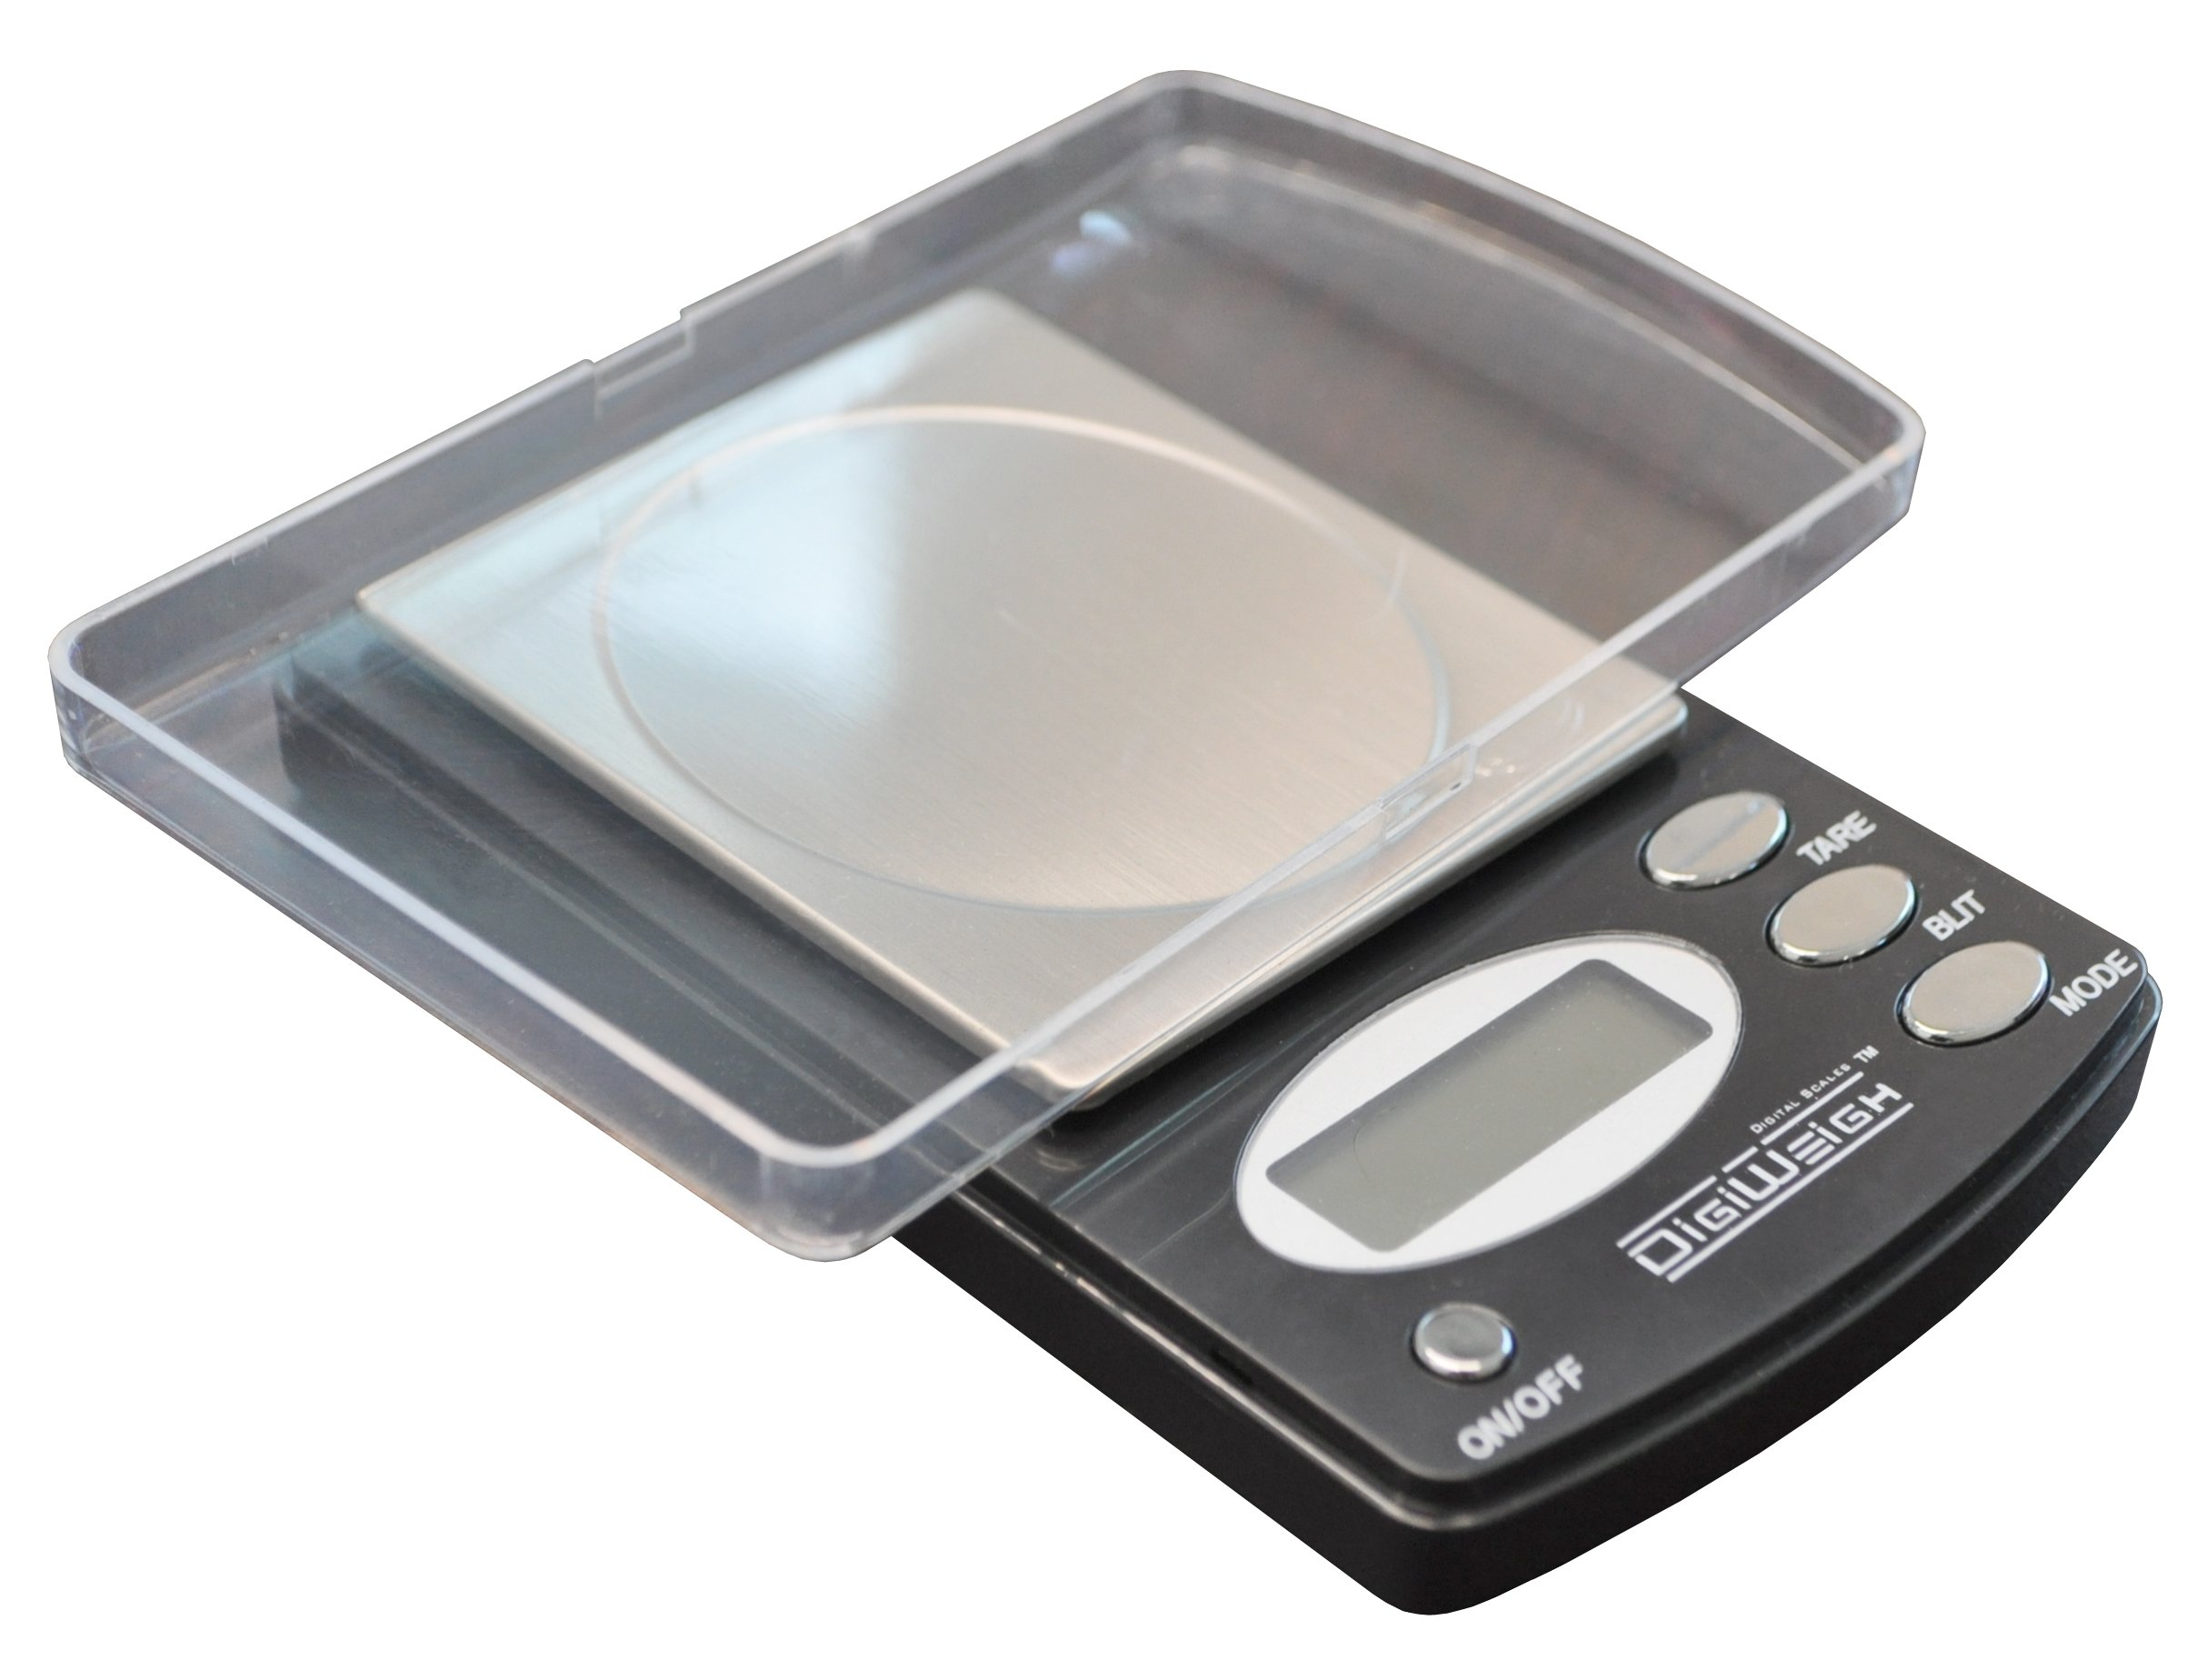 DIGIWEIGH Jewelry Pocket Scale (DW-100AX)